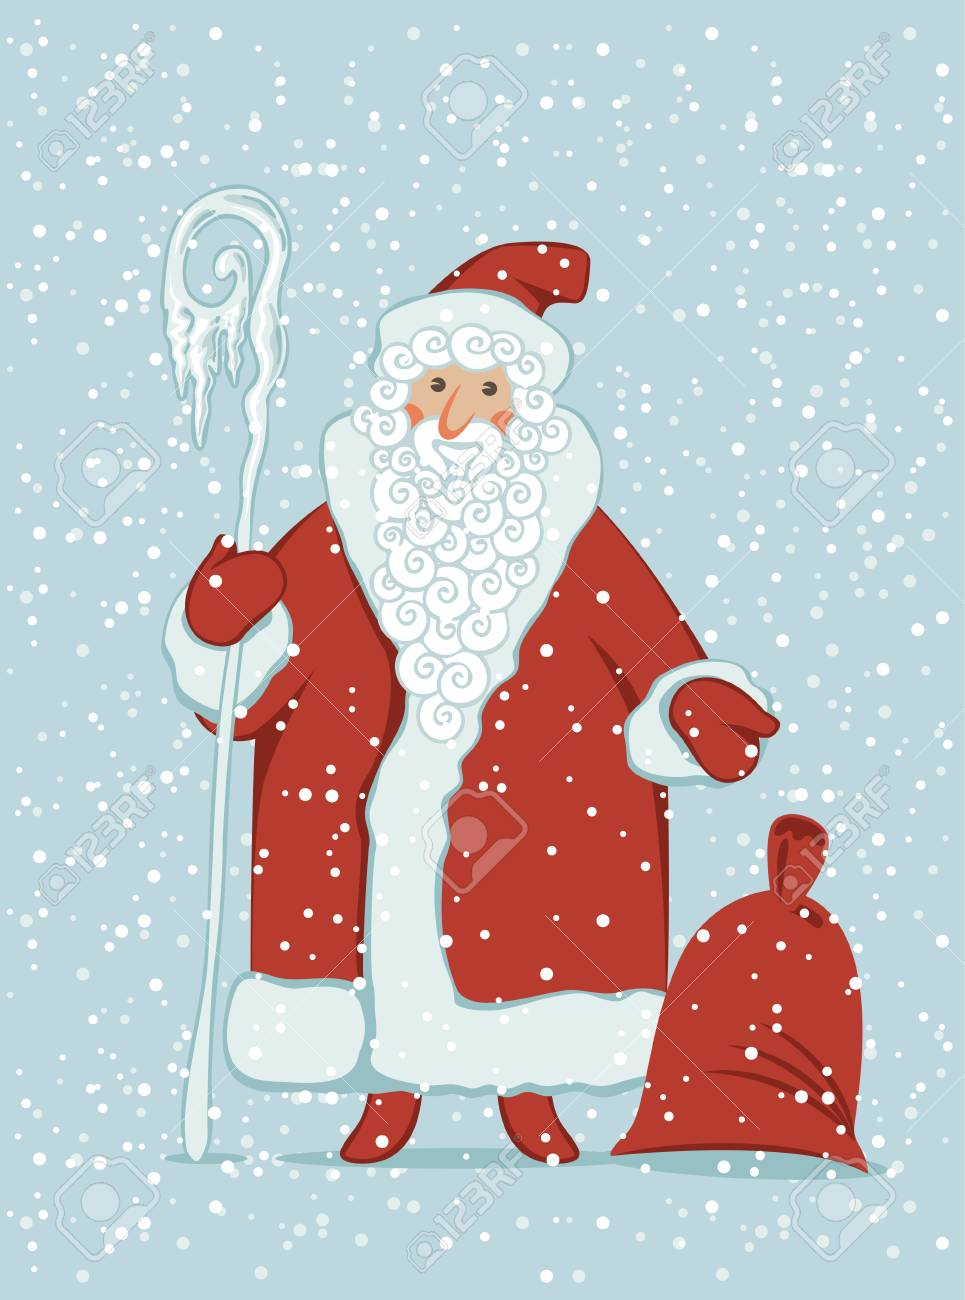 Winter Vector Illustration On The Theme Of Merry Christmas And